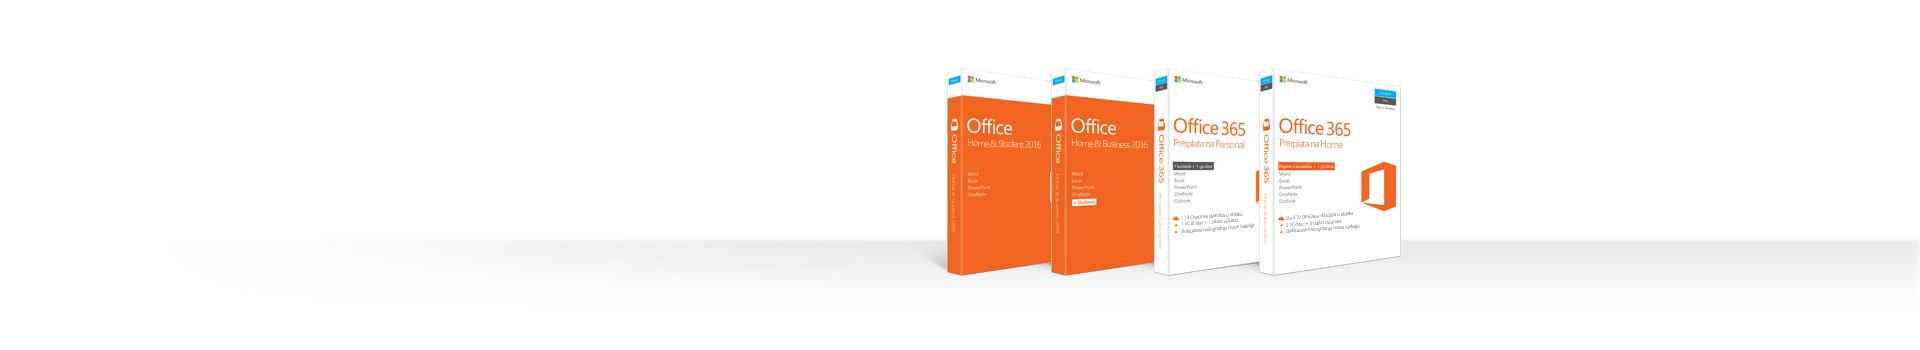 Red polja za Office 2016 i Office 365 proizvode za Mac